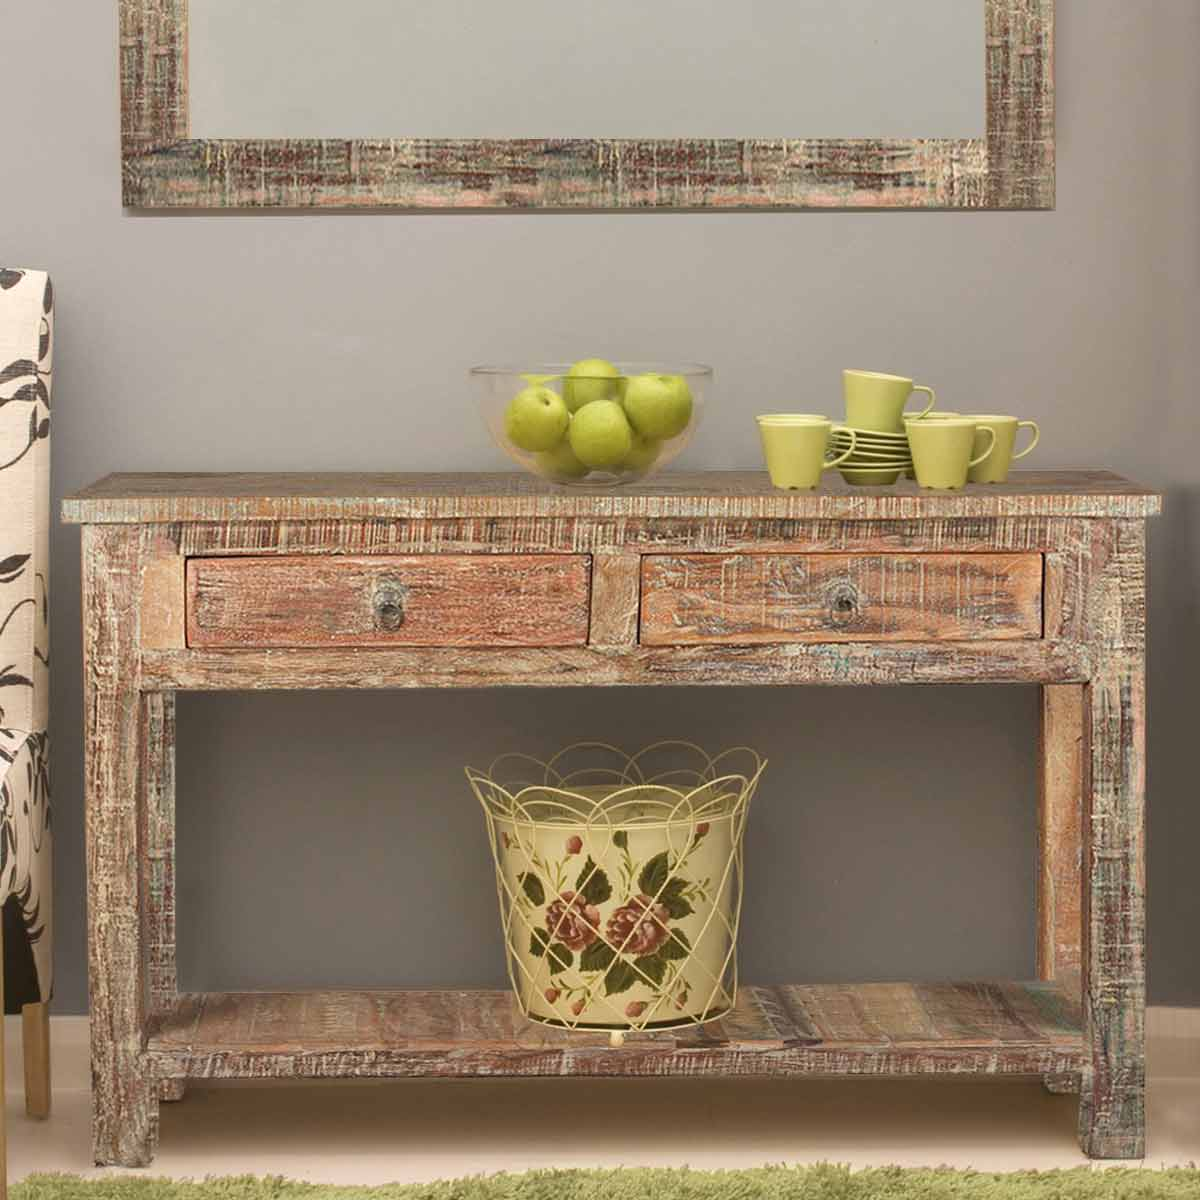 Superb img of Rustic Reclaimed Wood Naturally Distressed Hall Console Table with #957536 color and 1200x1200 pixels